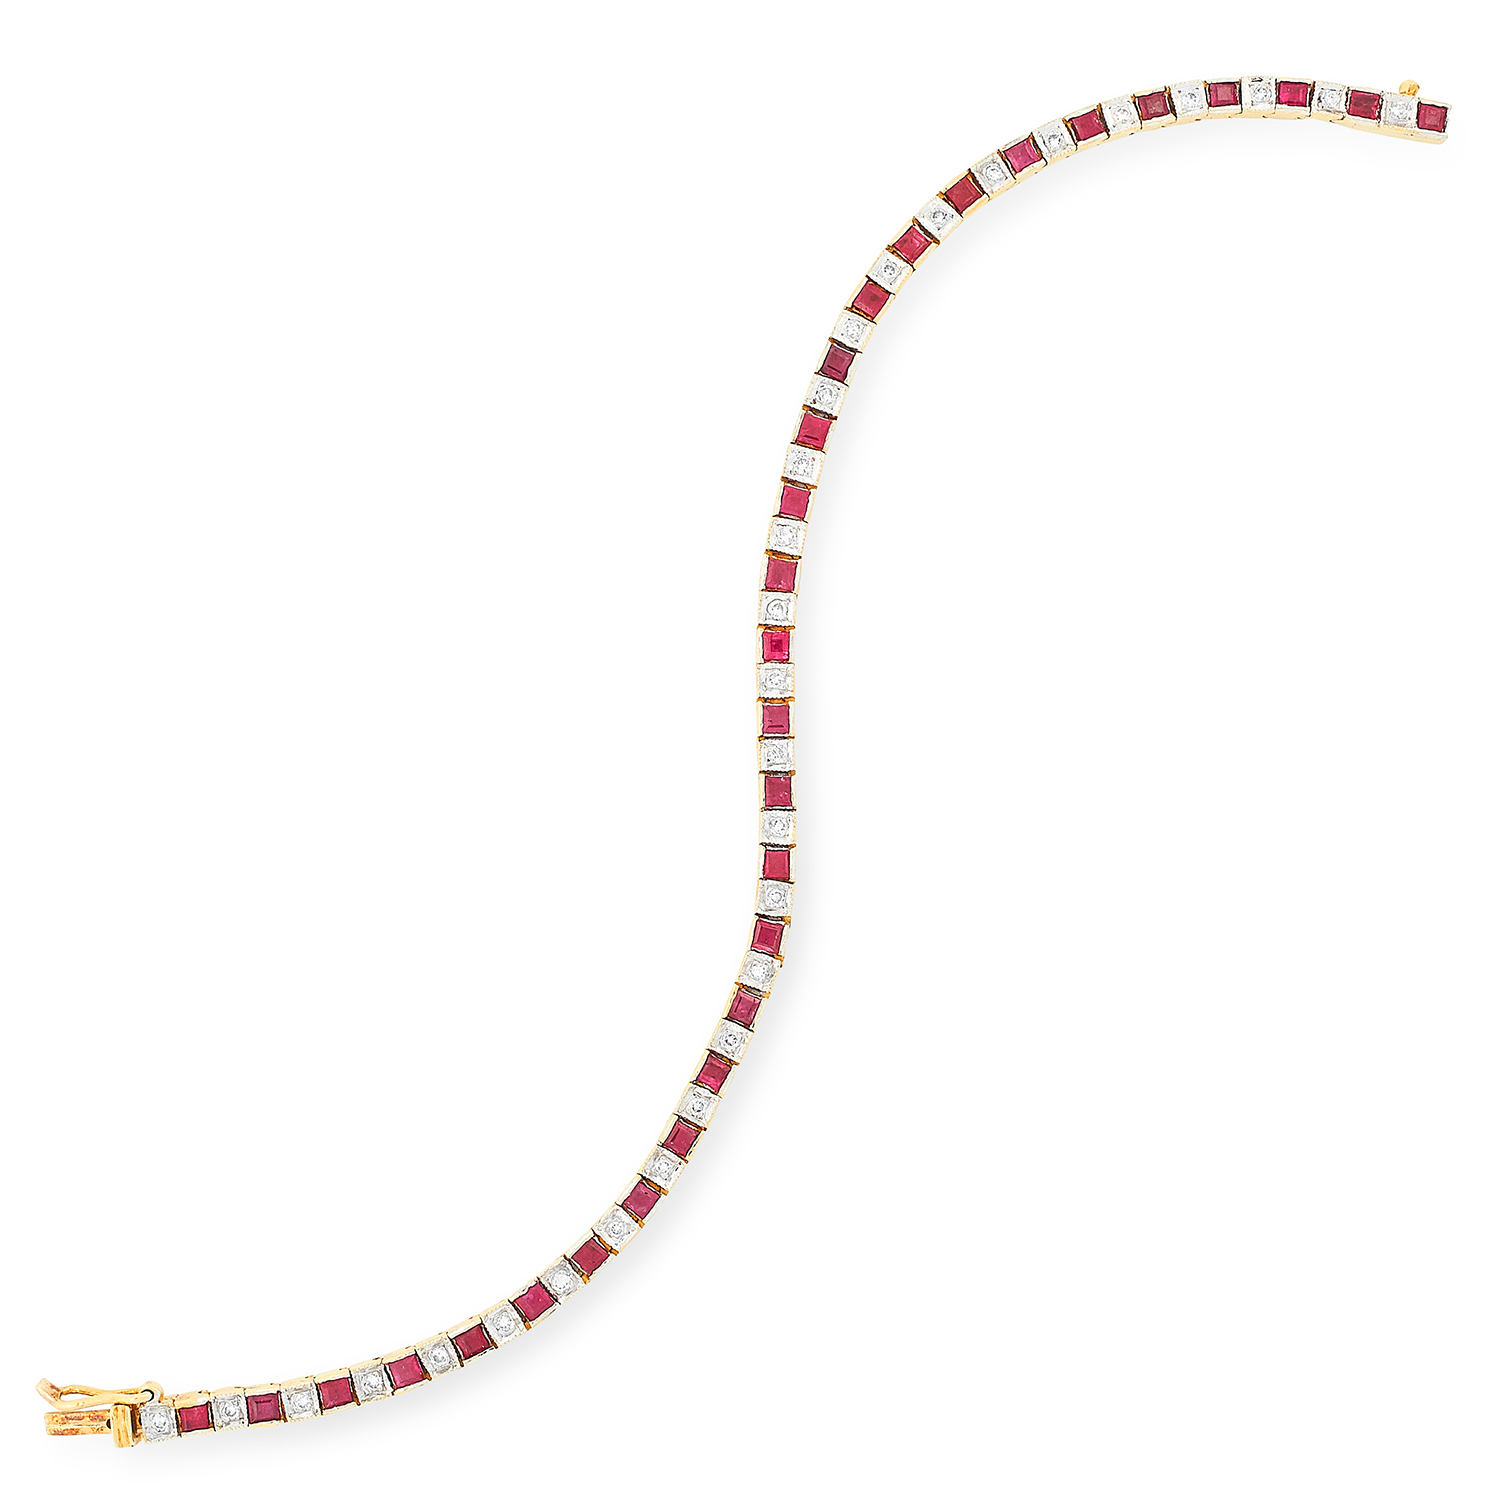 Los 47 - RUBY AND DIAMOND LINE BRACELET comprising of alternating square cut rubies and round cut diamonds,